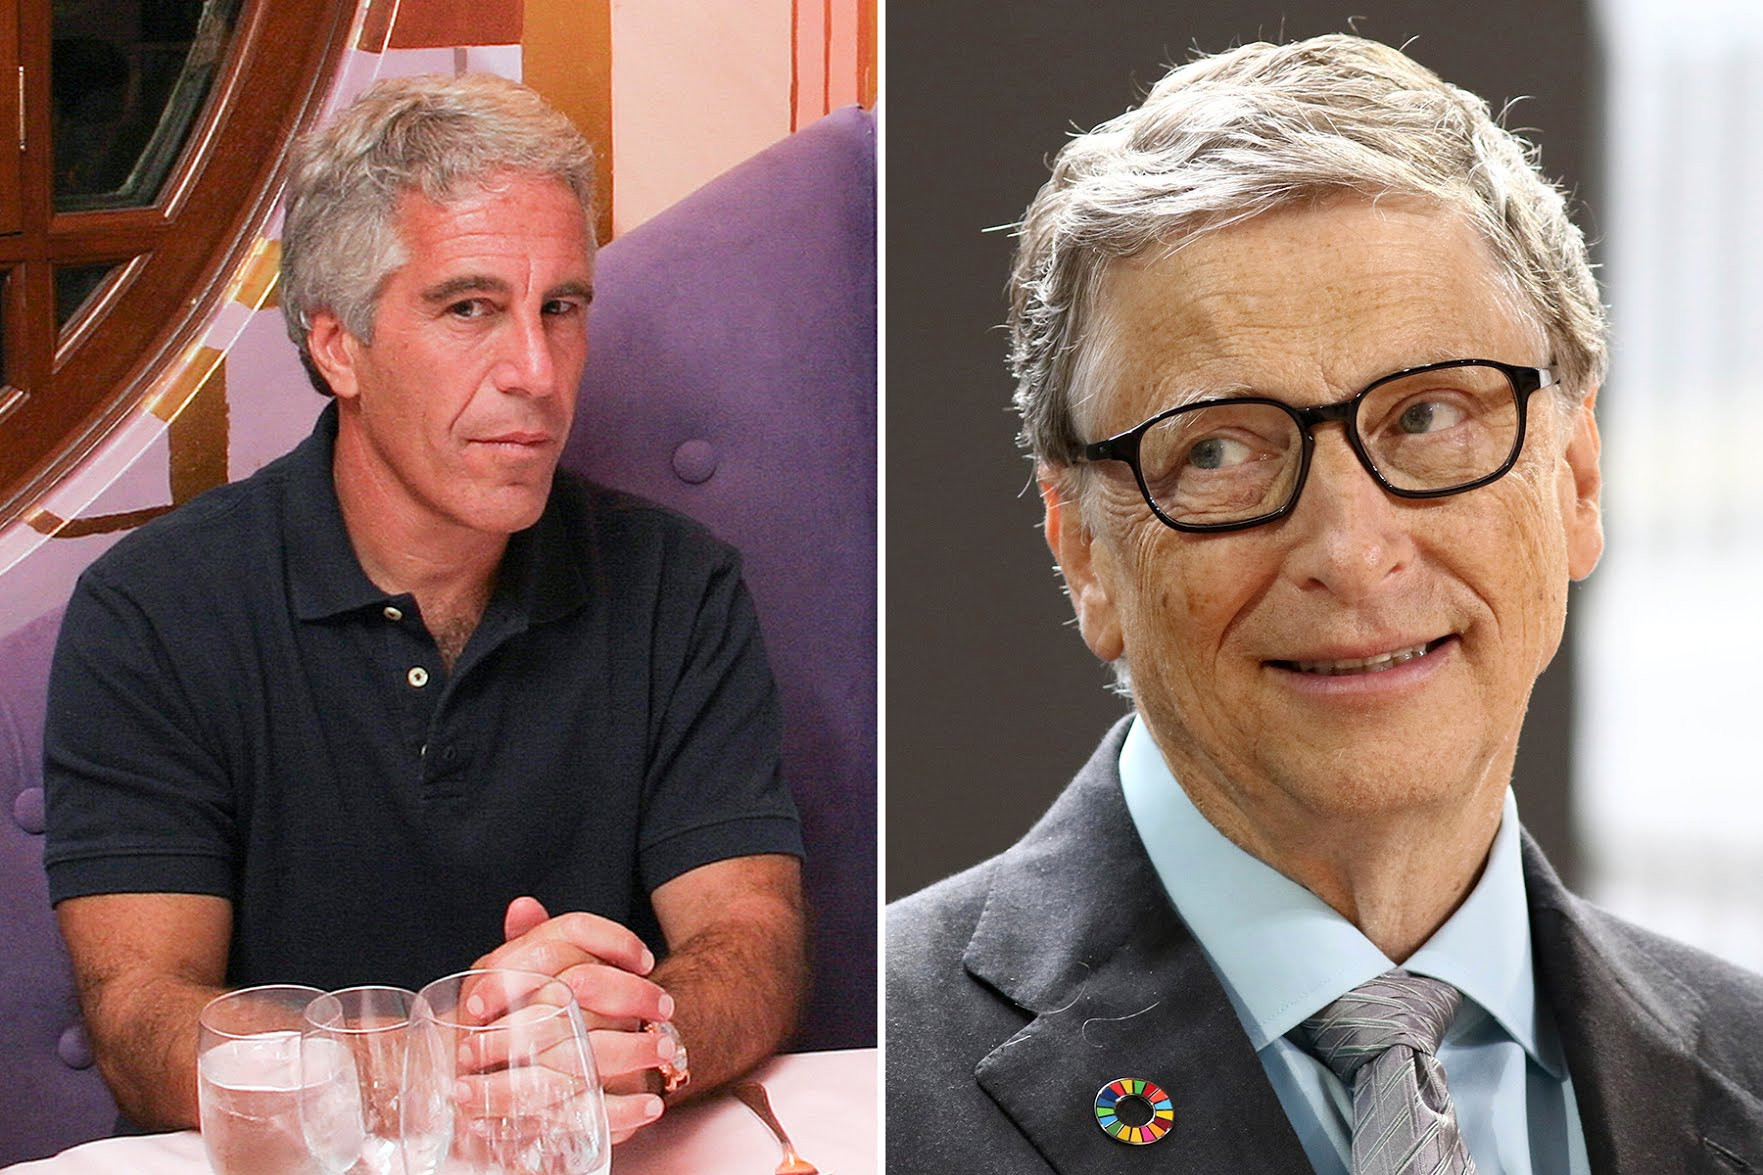 Bill Gates says he regrets the time spent with late pedophile Jeffrey Epstein